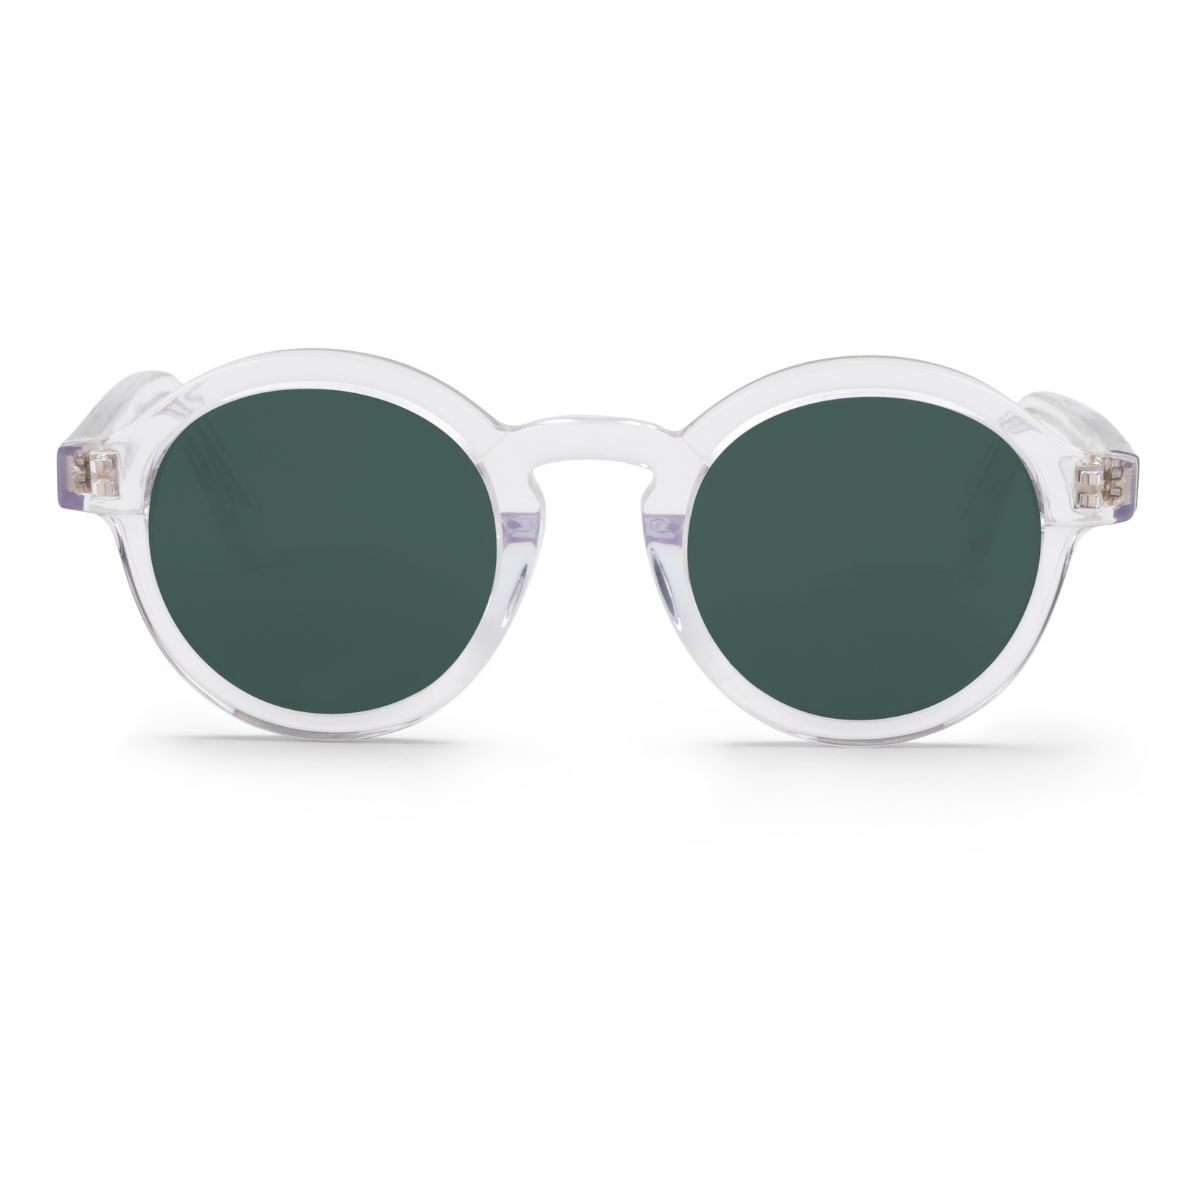 Dalston Crystal Sunglasses